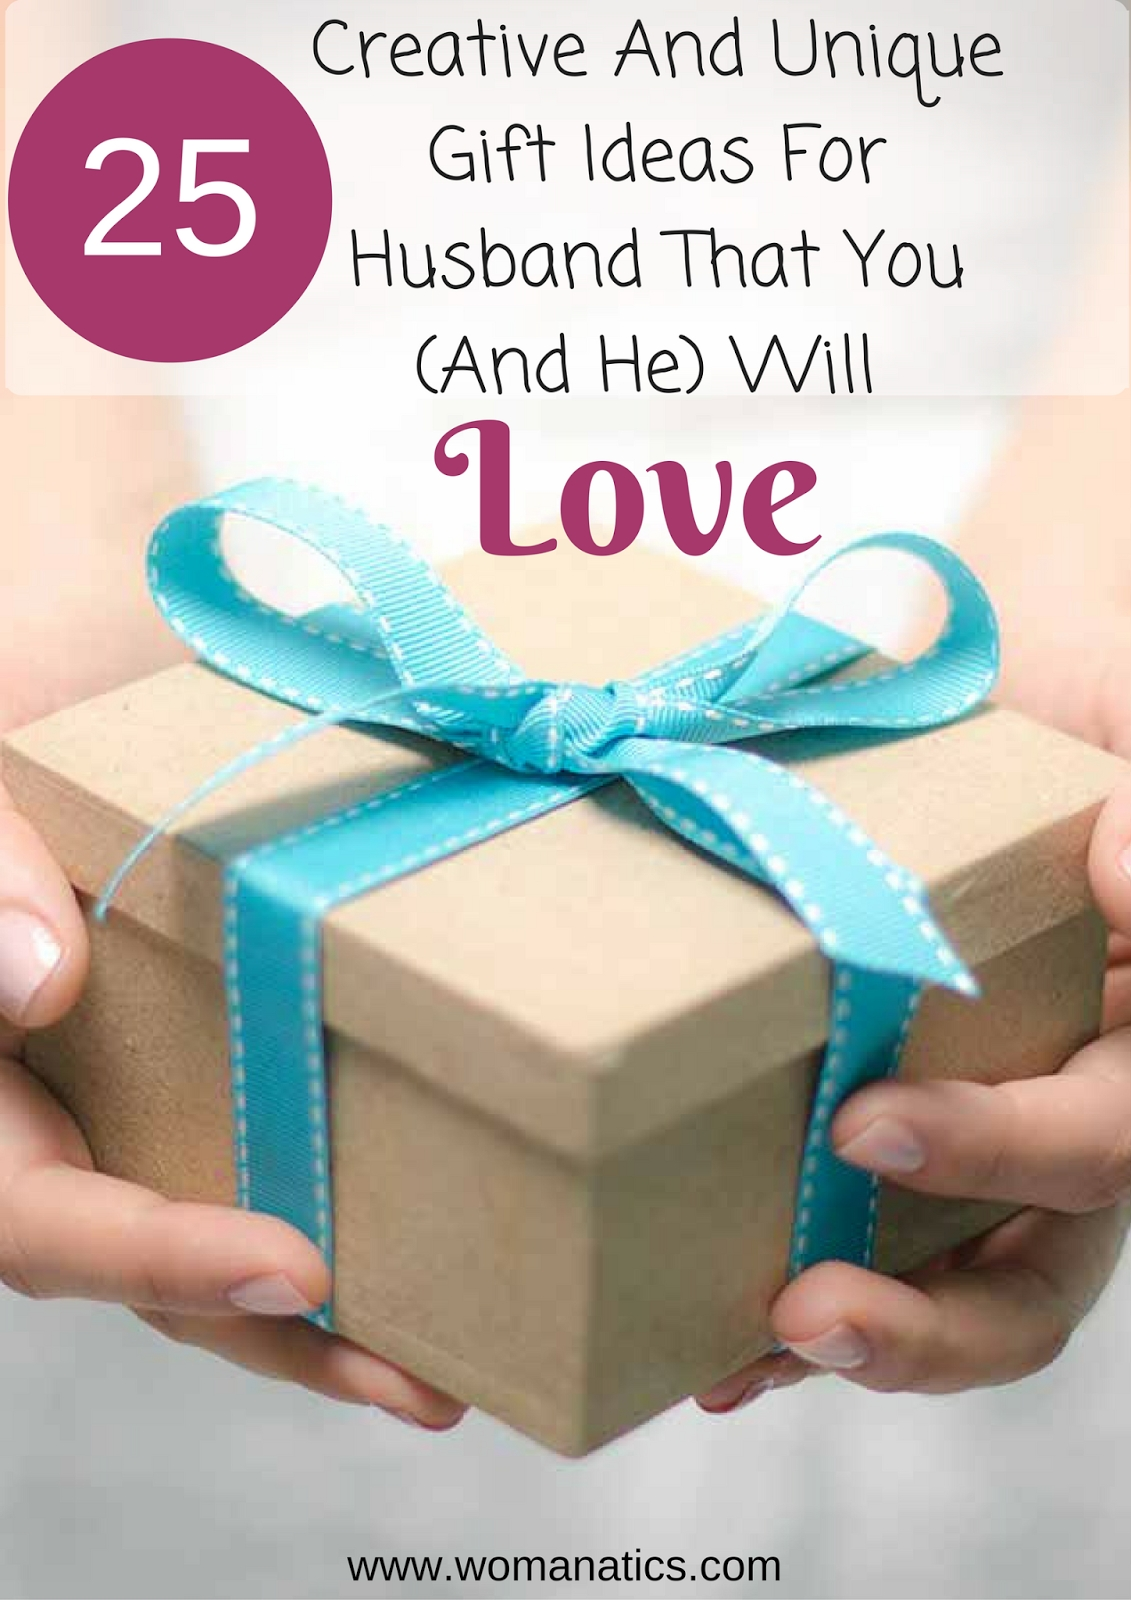 10 Famous Birthday Gift Ideas For Husband 25 creative and unique gift ideas for husbands birthday that you 7